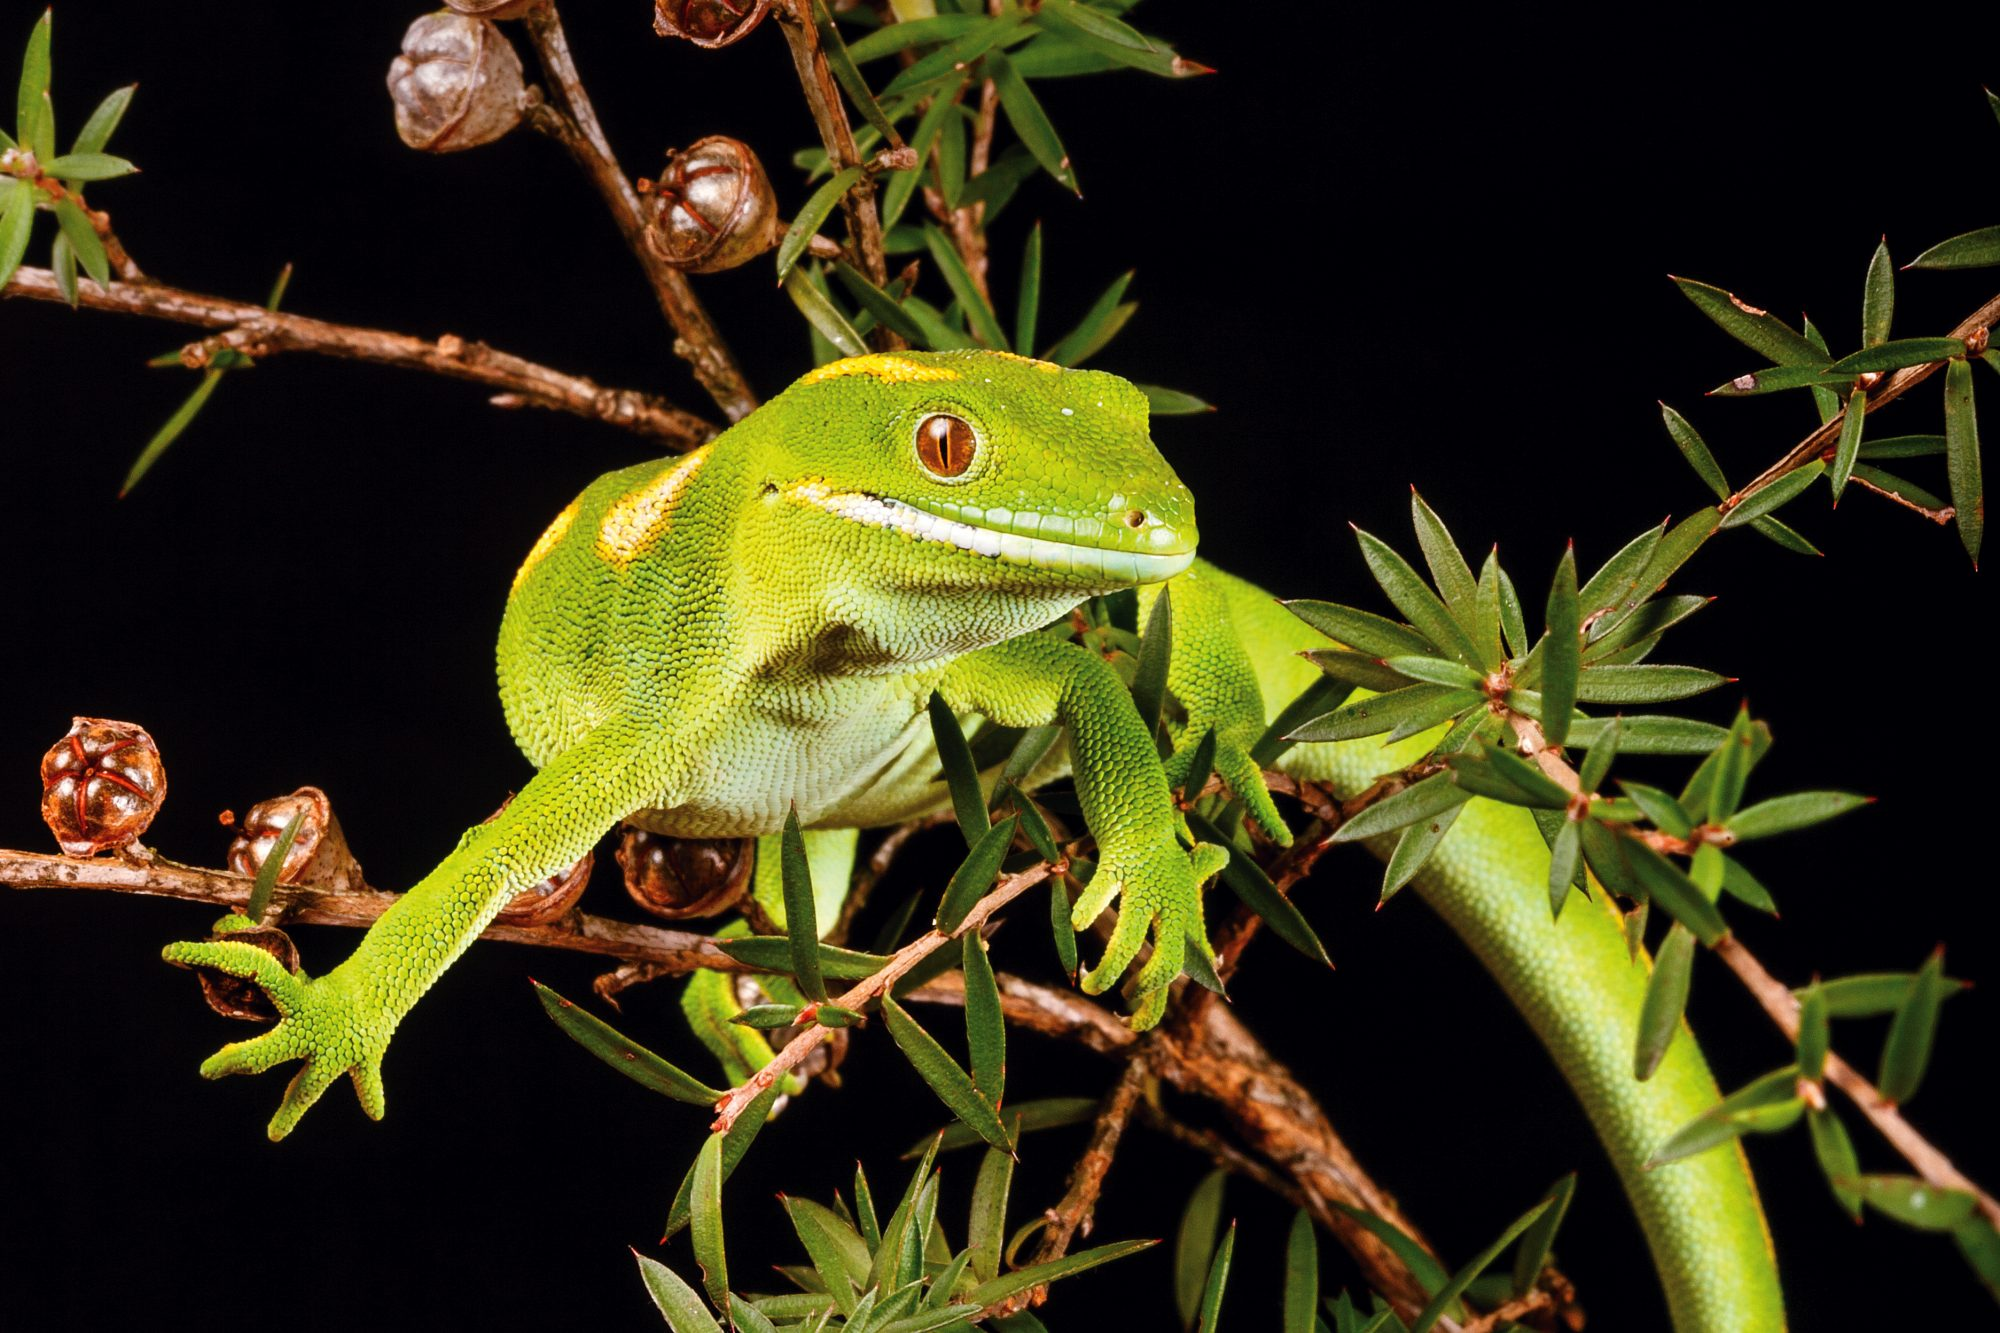 The Reptile Smugglers New Zealand Geographic